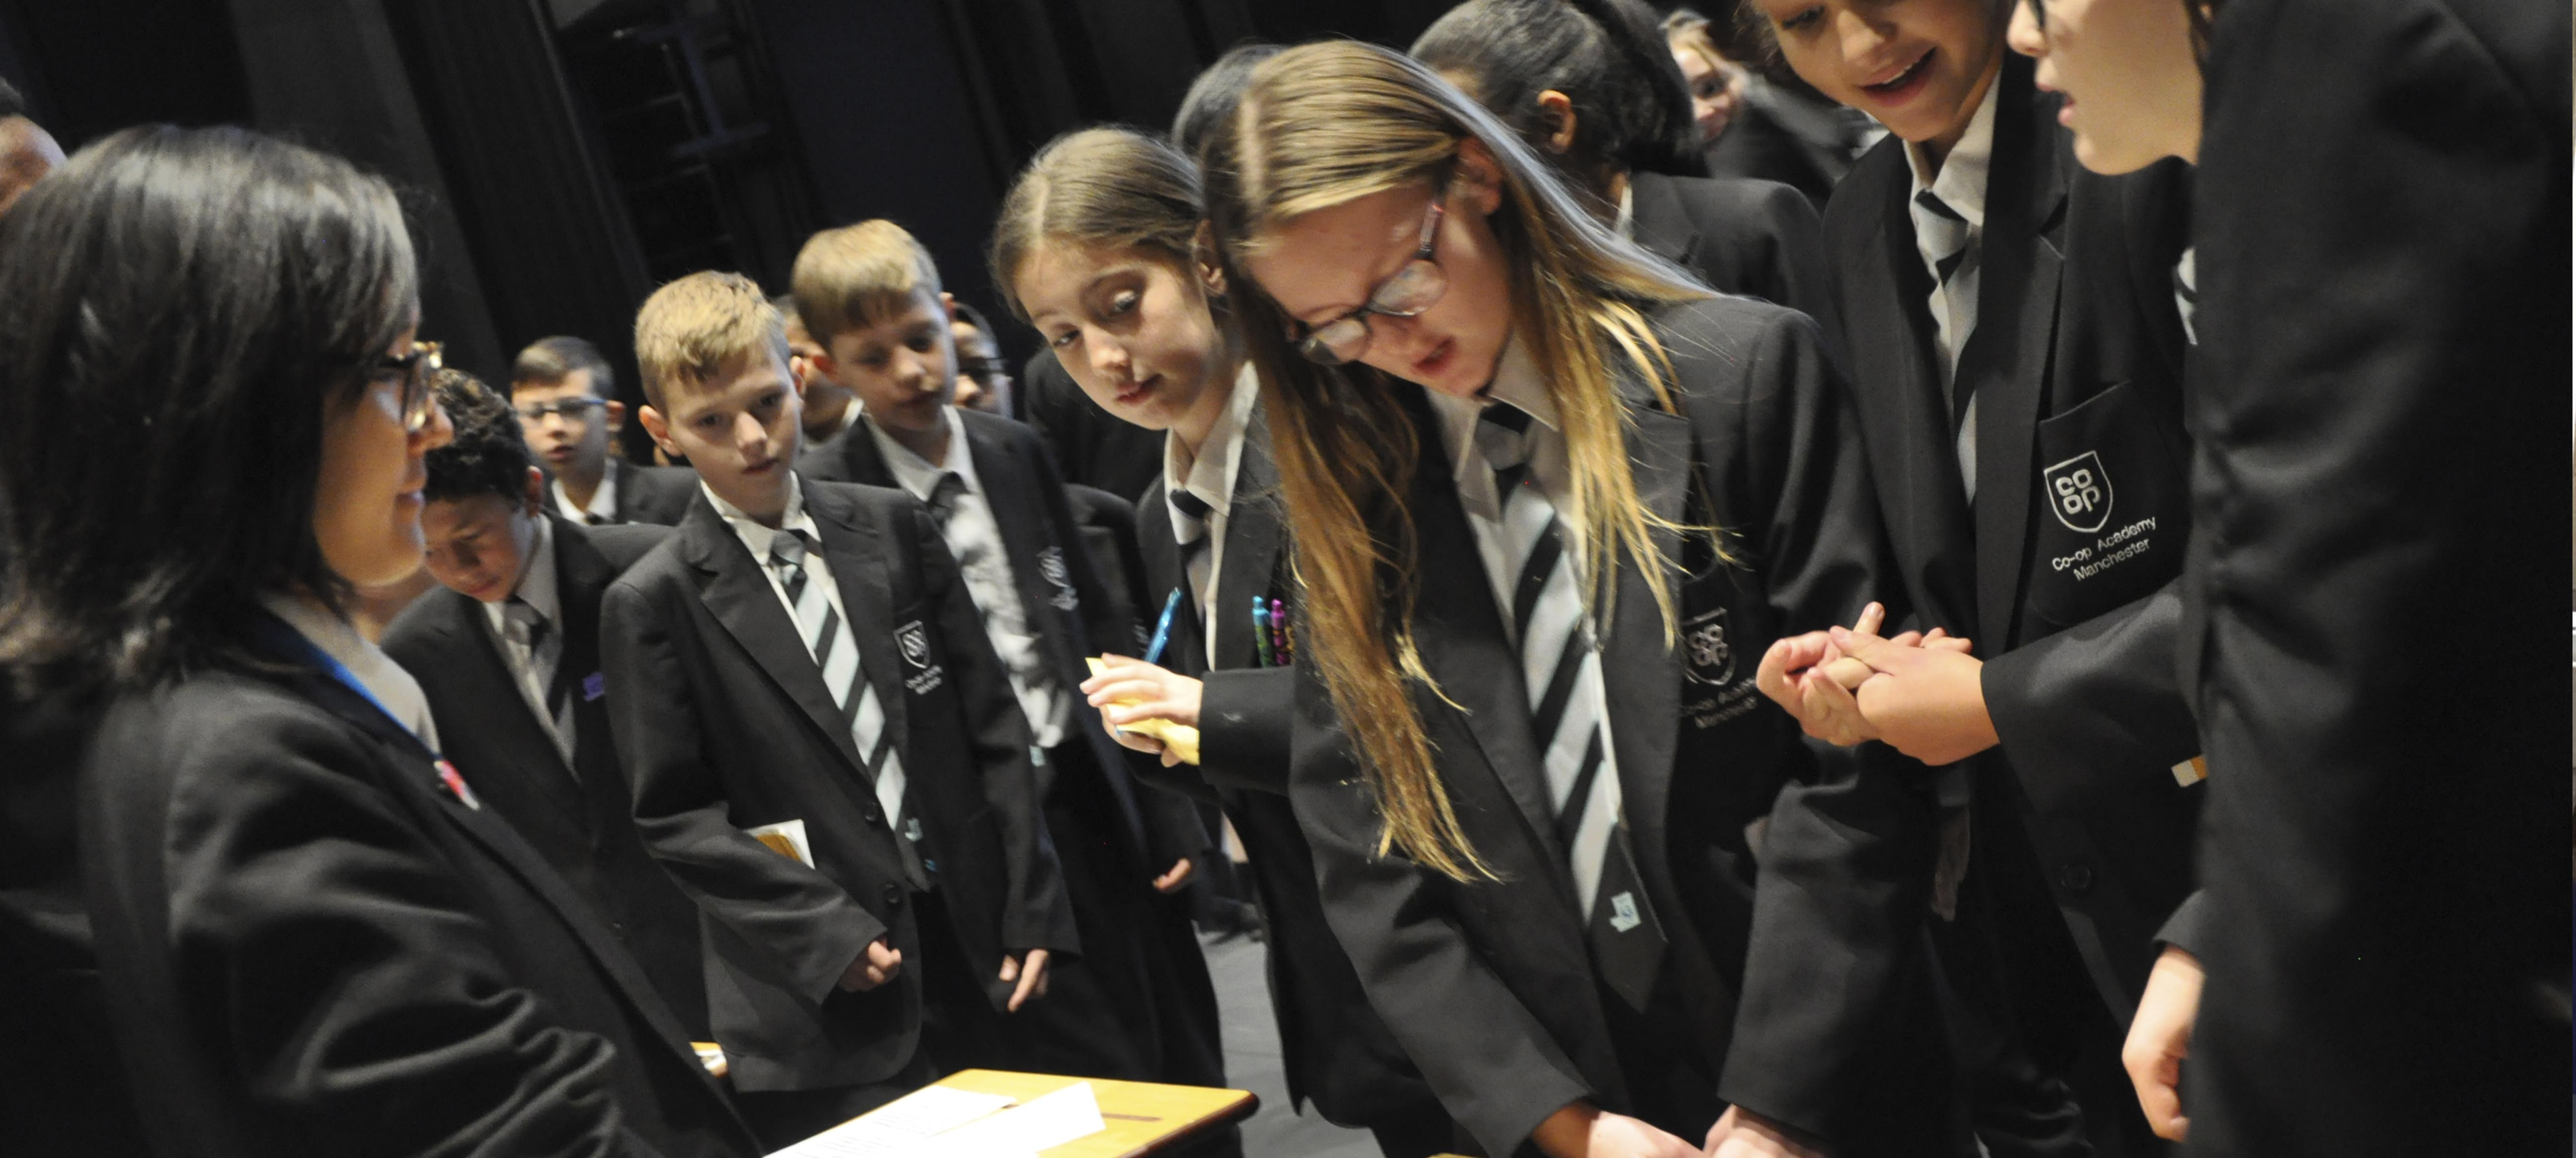 Students find out what clubs are on offer at the extra-curricular fair